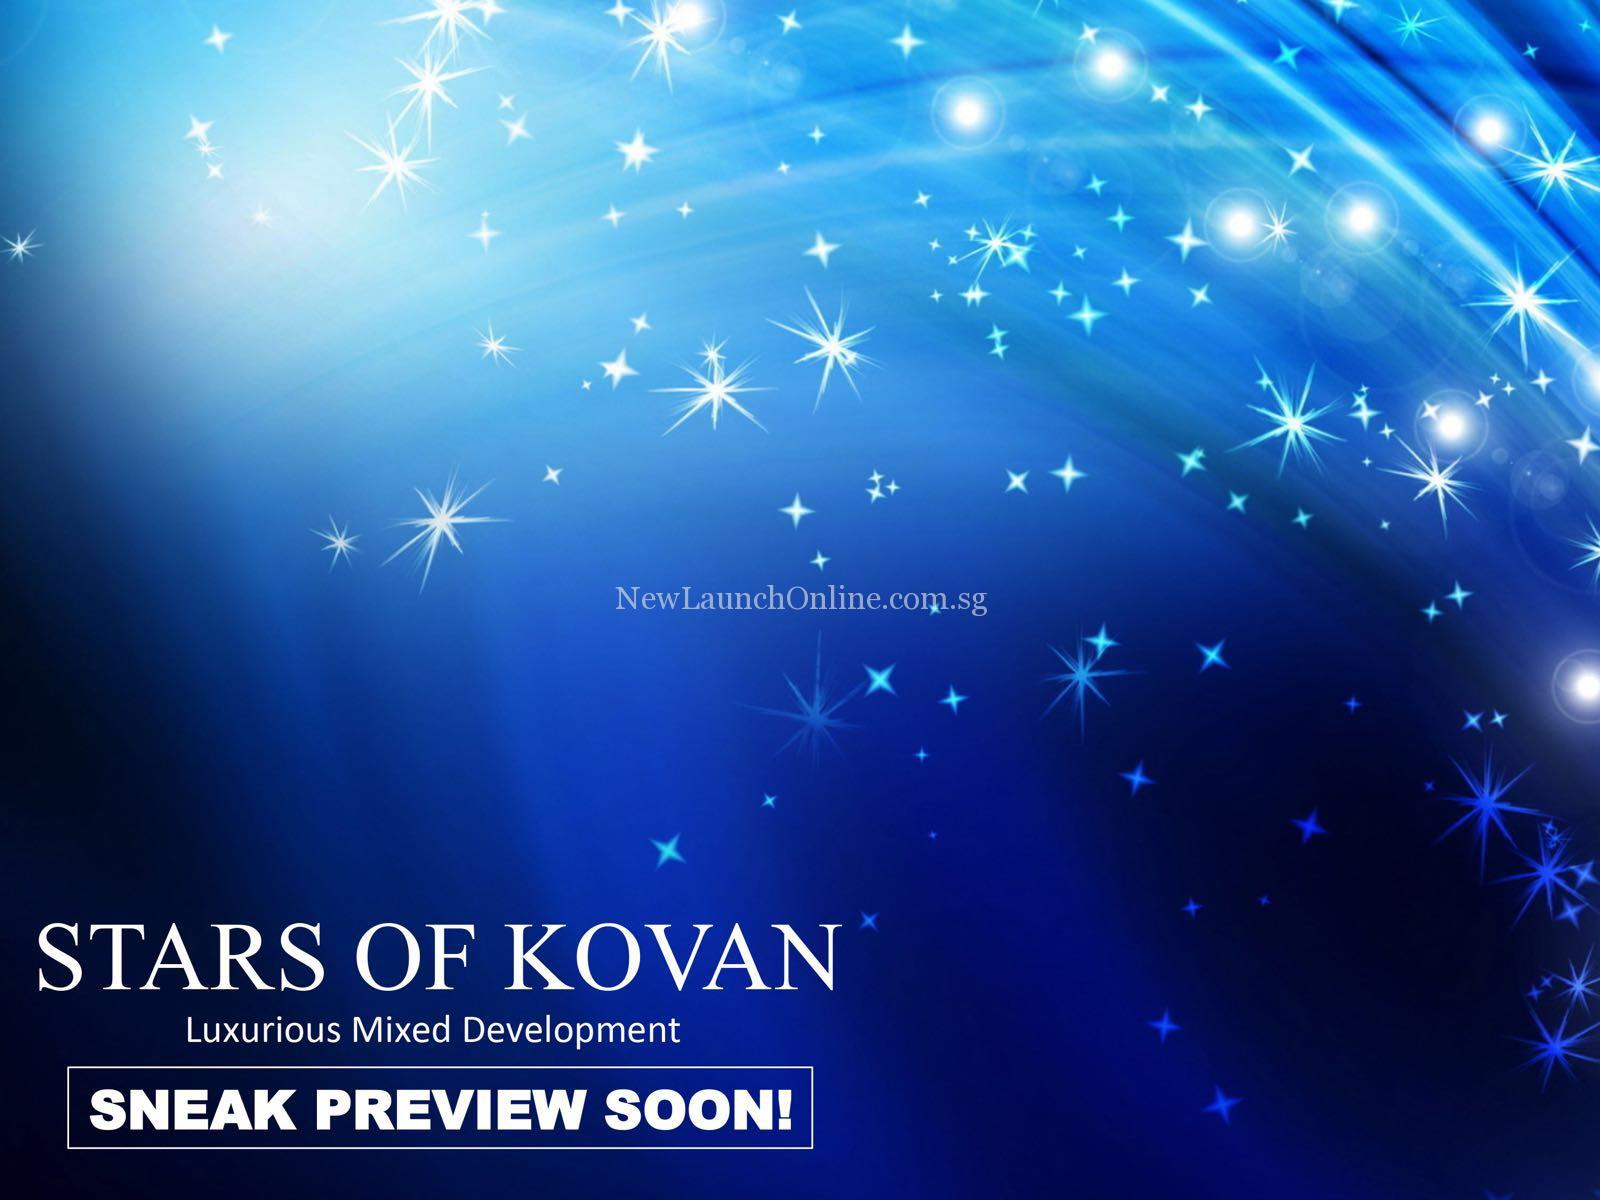 Stars of Kovan by Cheung Kong Actual Site